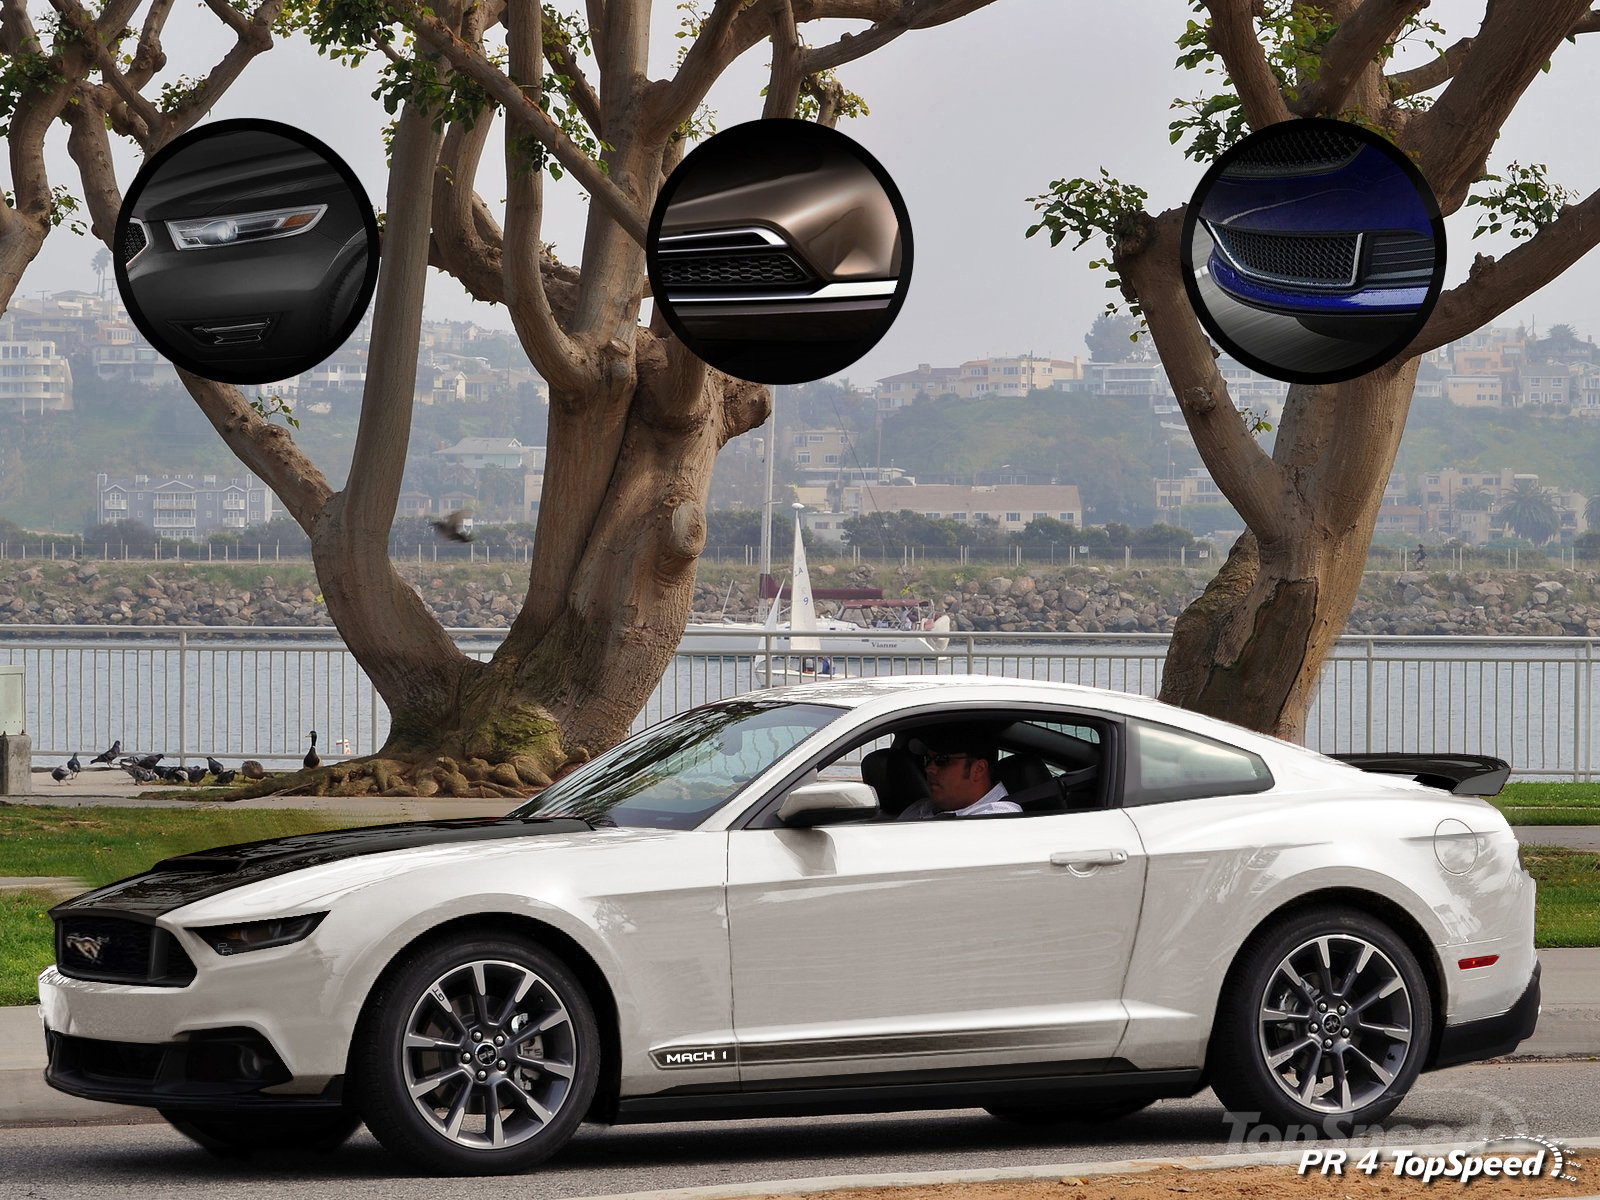 2015 Ford Mustang Mach 1 | car review @ Top Speed